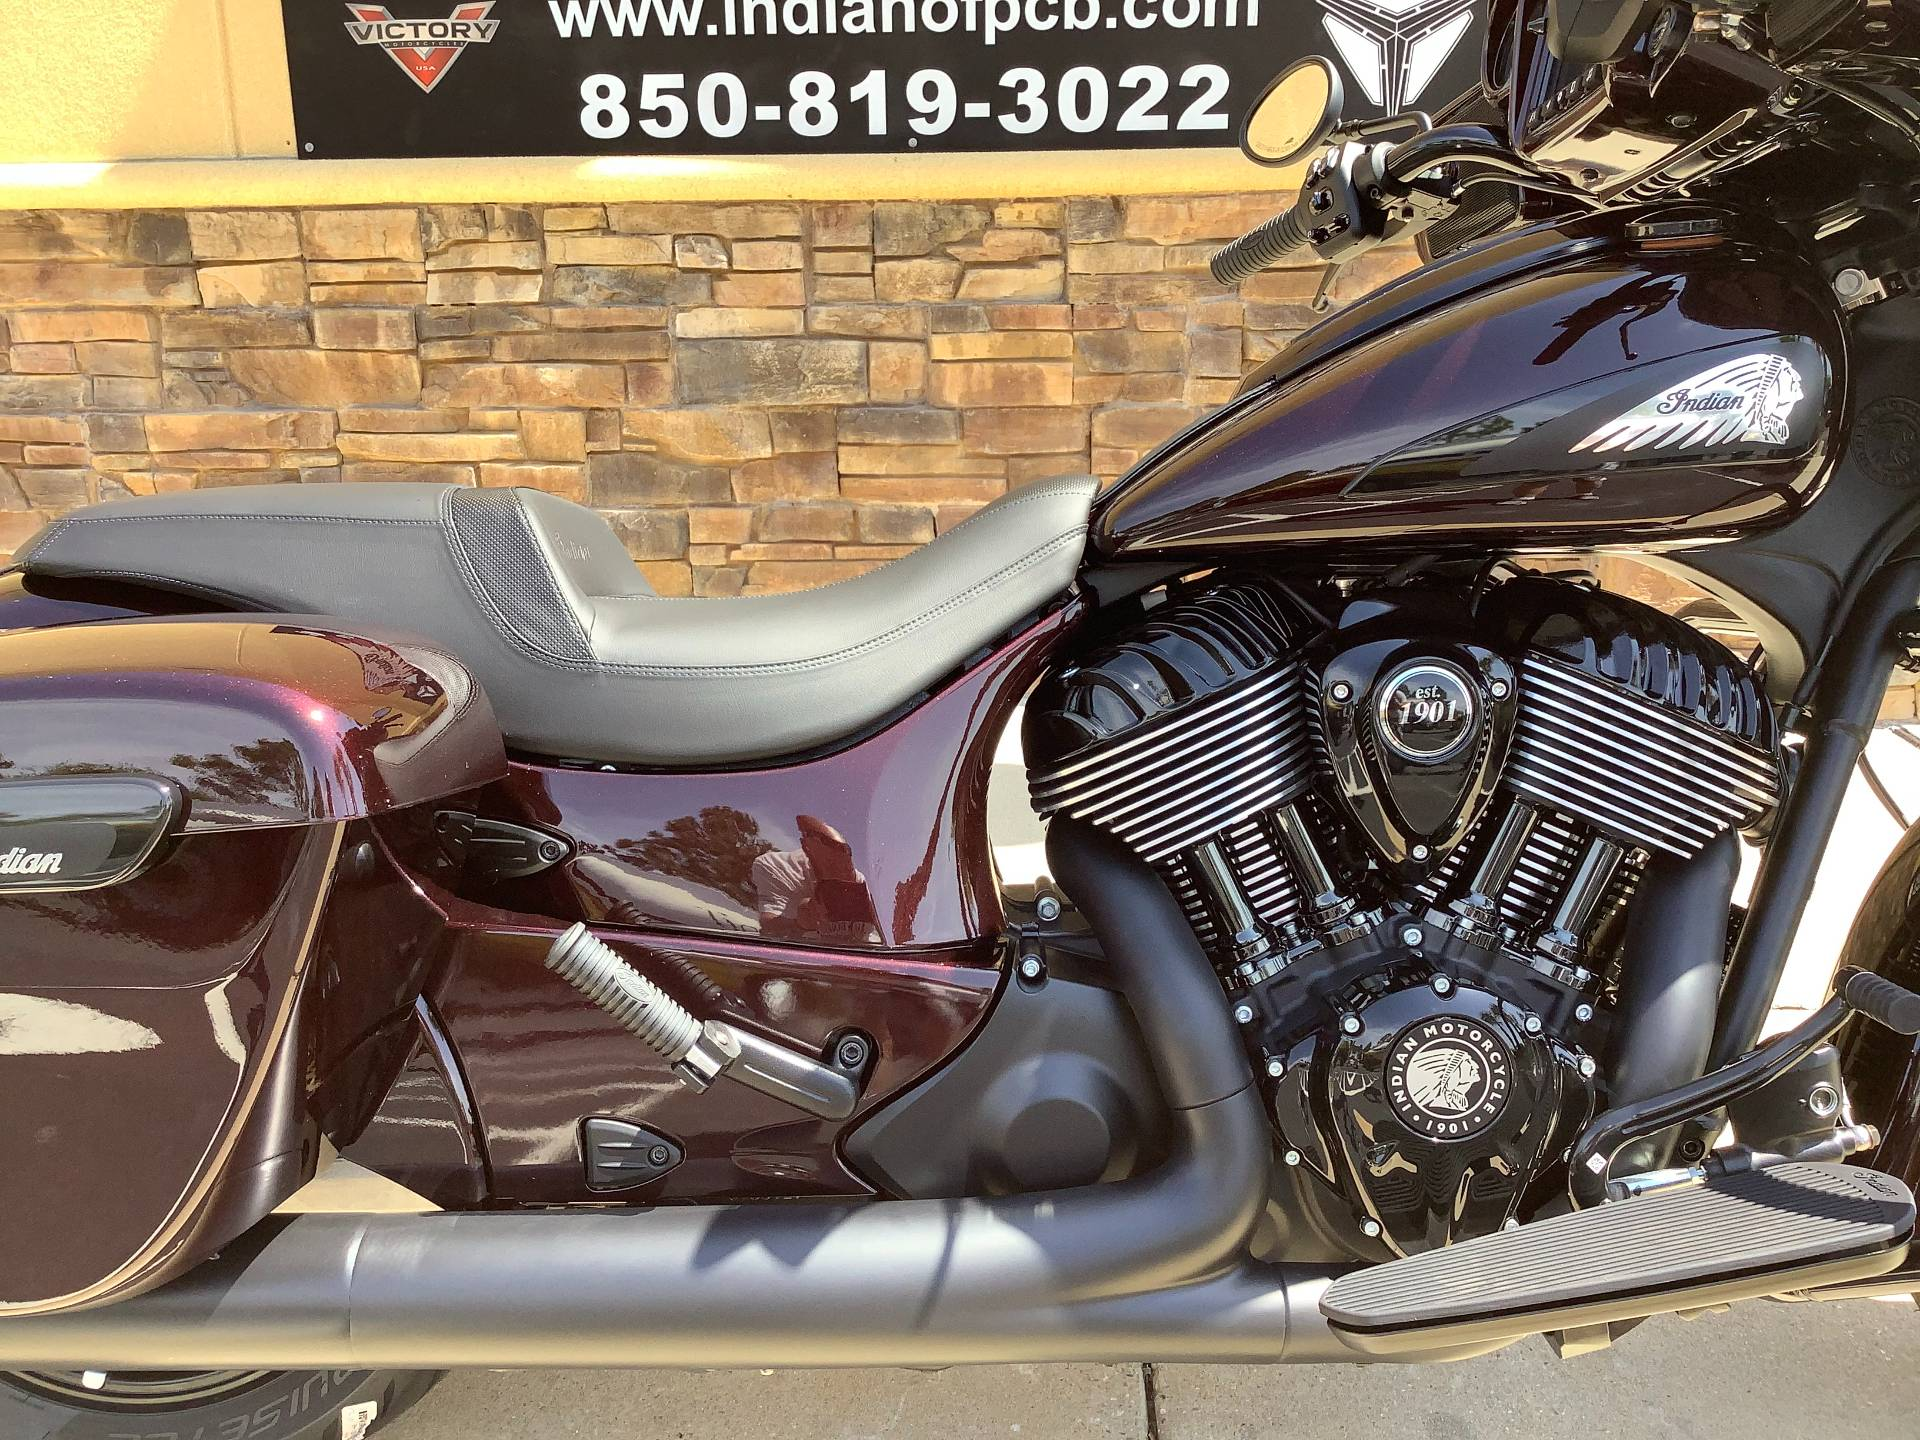 2021 Indian CHIEFTAIN DARKHORSE in Panama City Beach, Florida - Photo 4